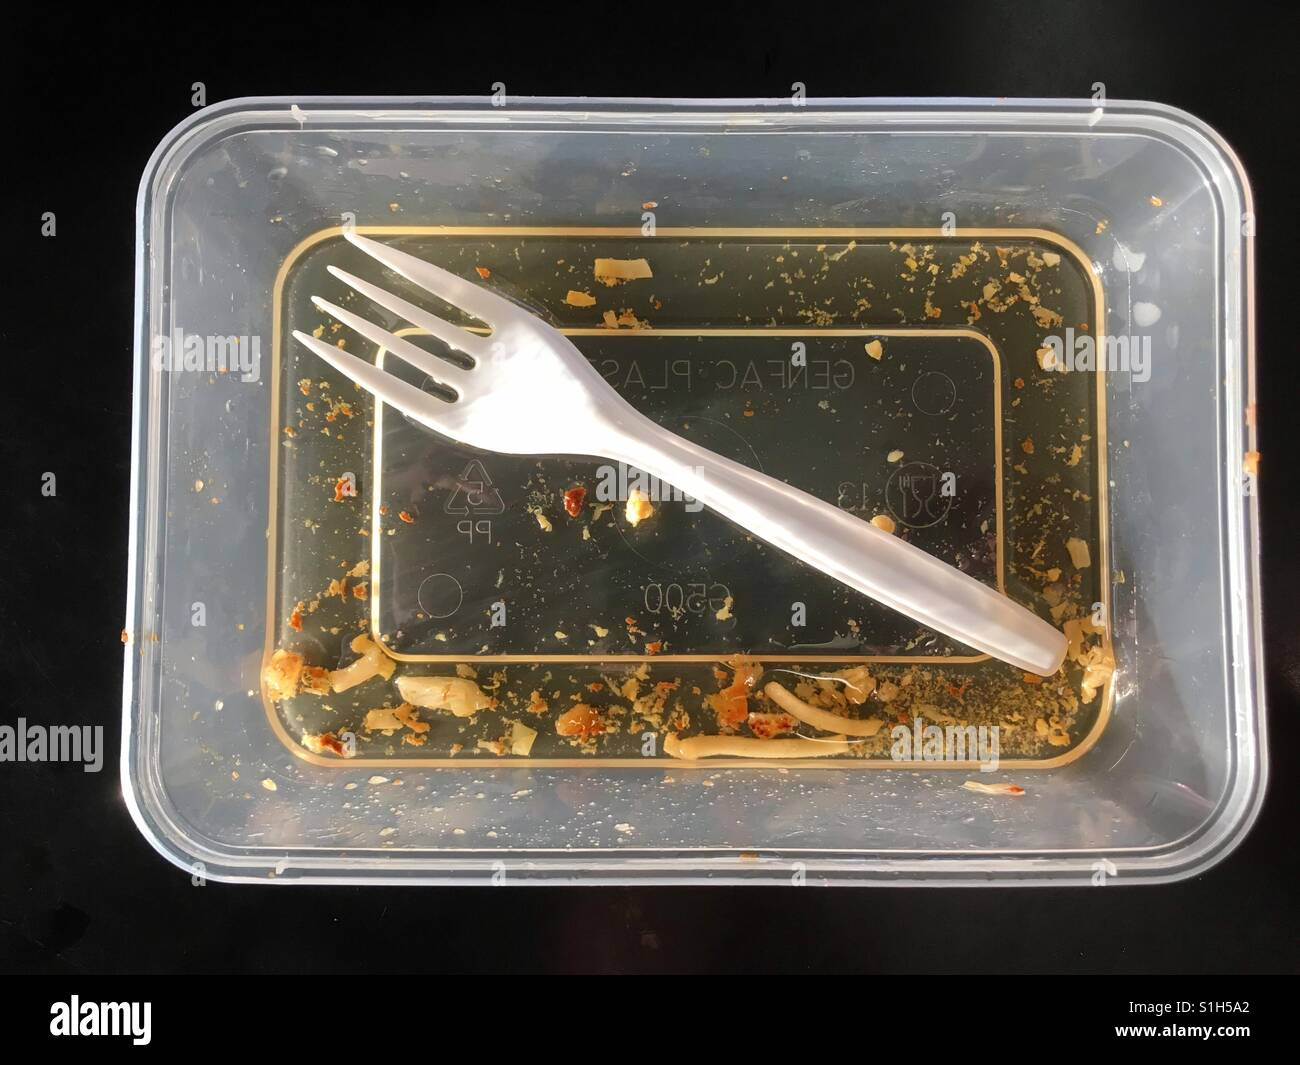 fork-inside-an-empty-and-greasy-food-tak